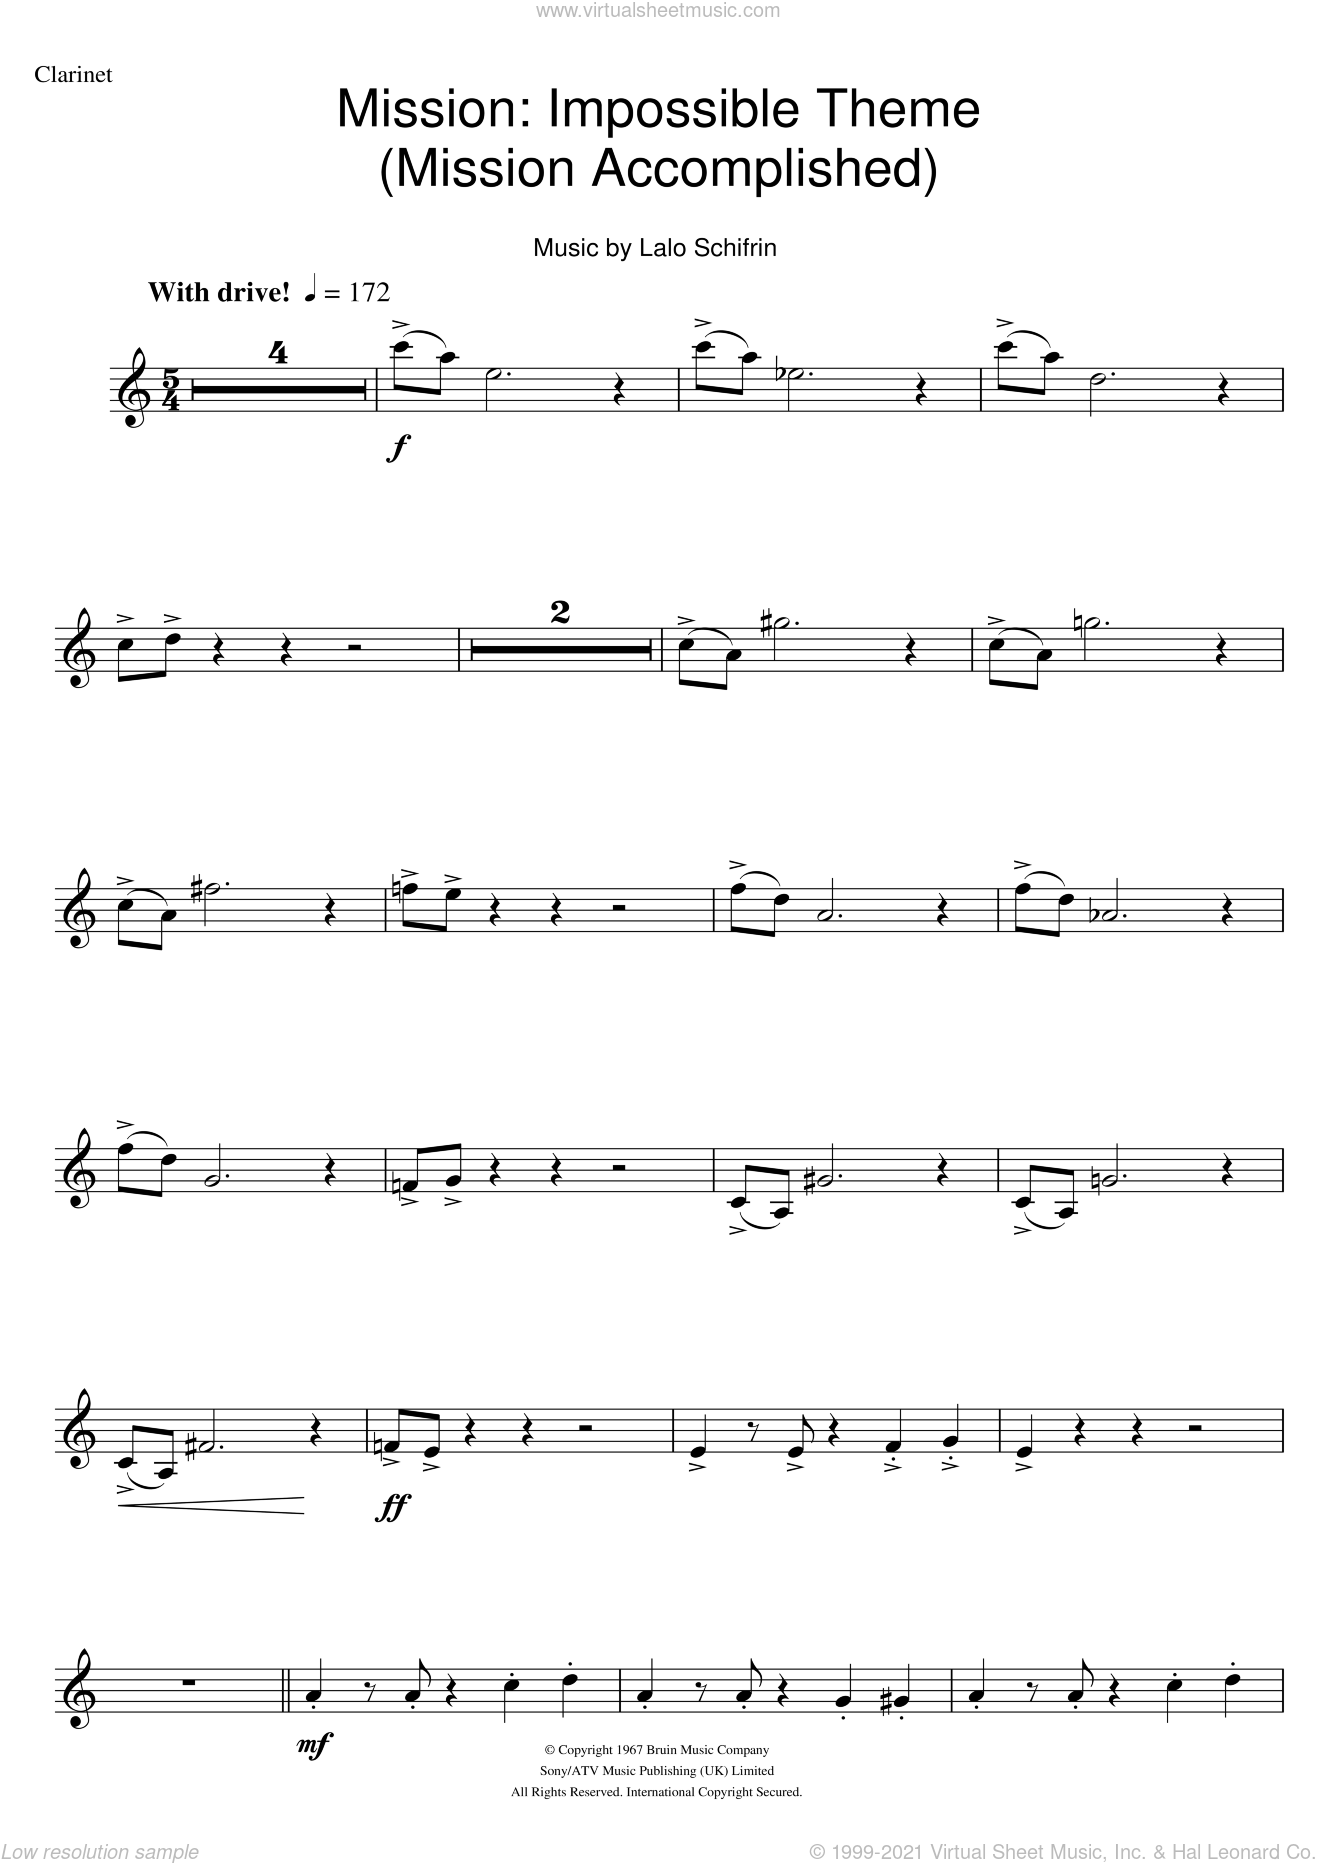 Mission: Impossible Theme (Mission Accomplished) sheet music for clarinet solo by Lalo Schifrin and Fed Milano, intermediate skill level